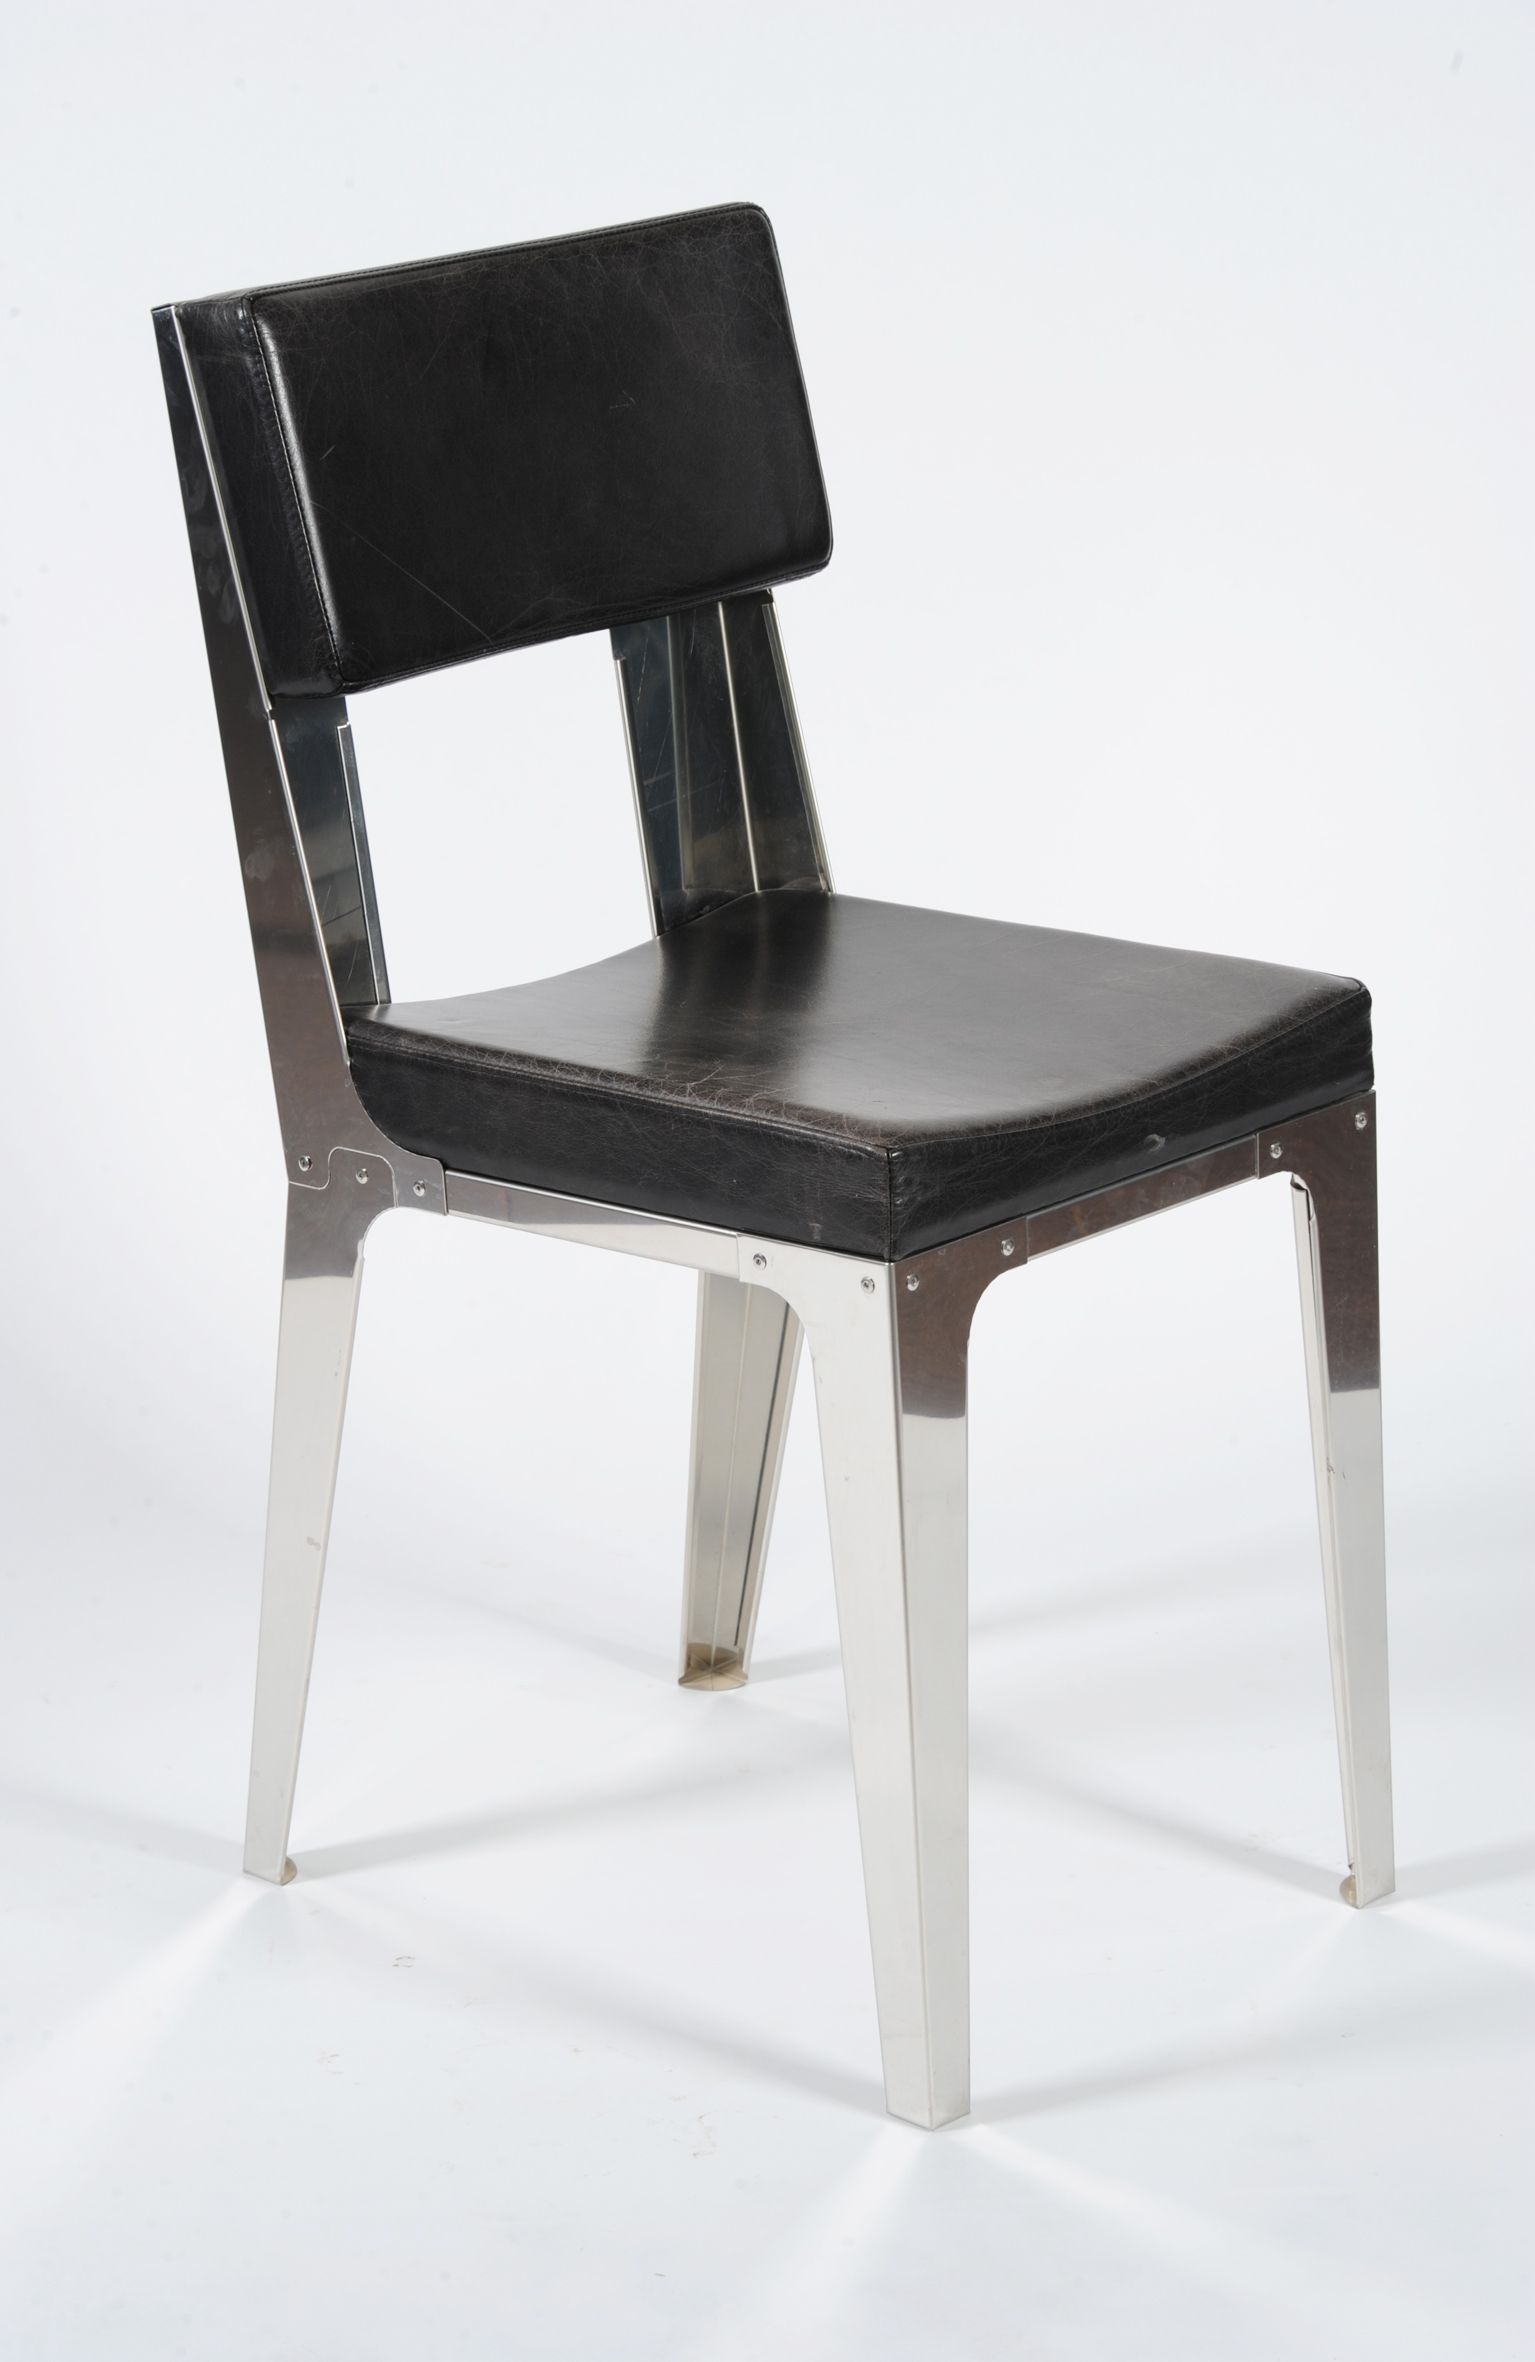 Stainless Steel Glossy Chair with Leather Upholtery / Año: 2004 / Vendidas: Ninguna